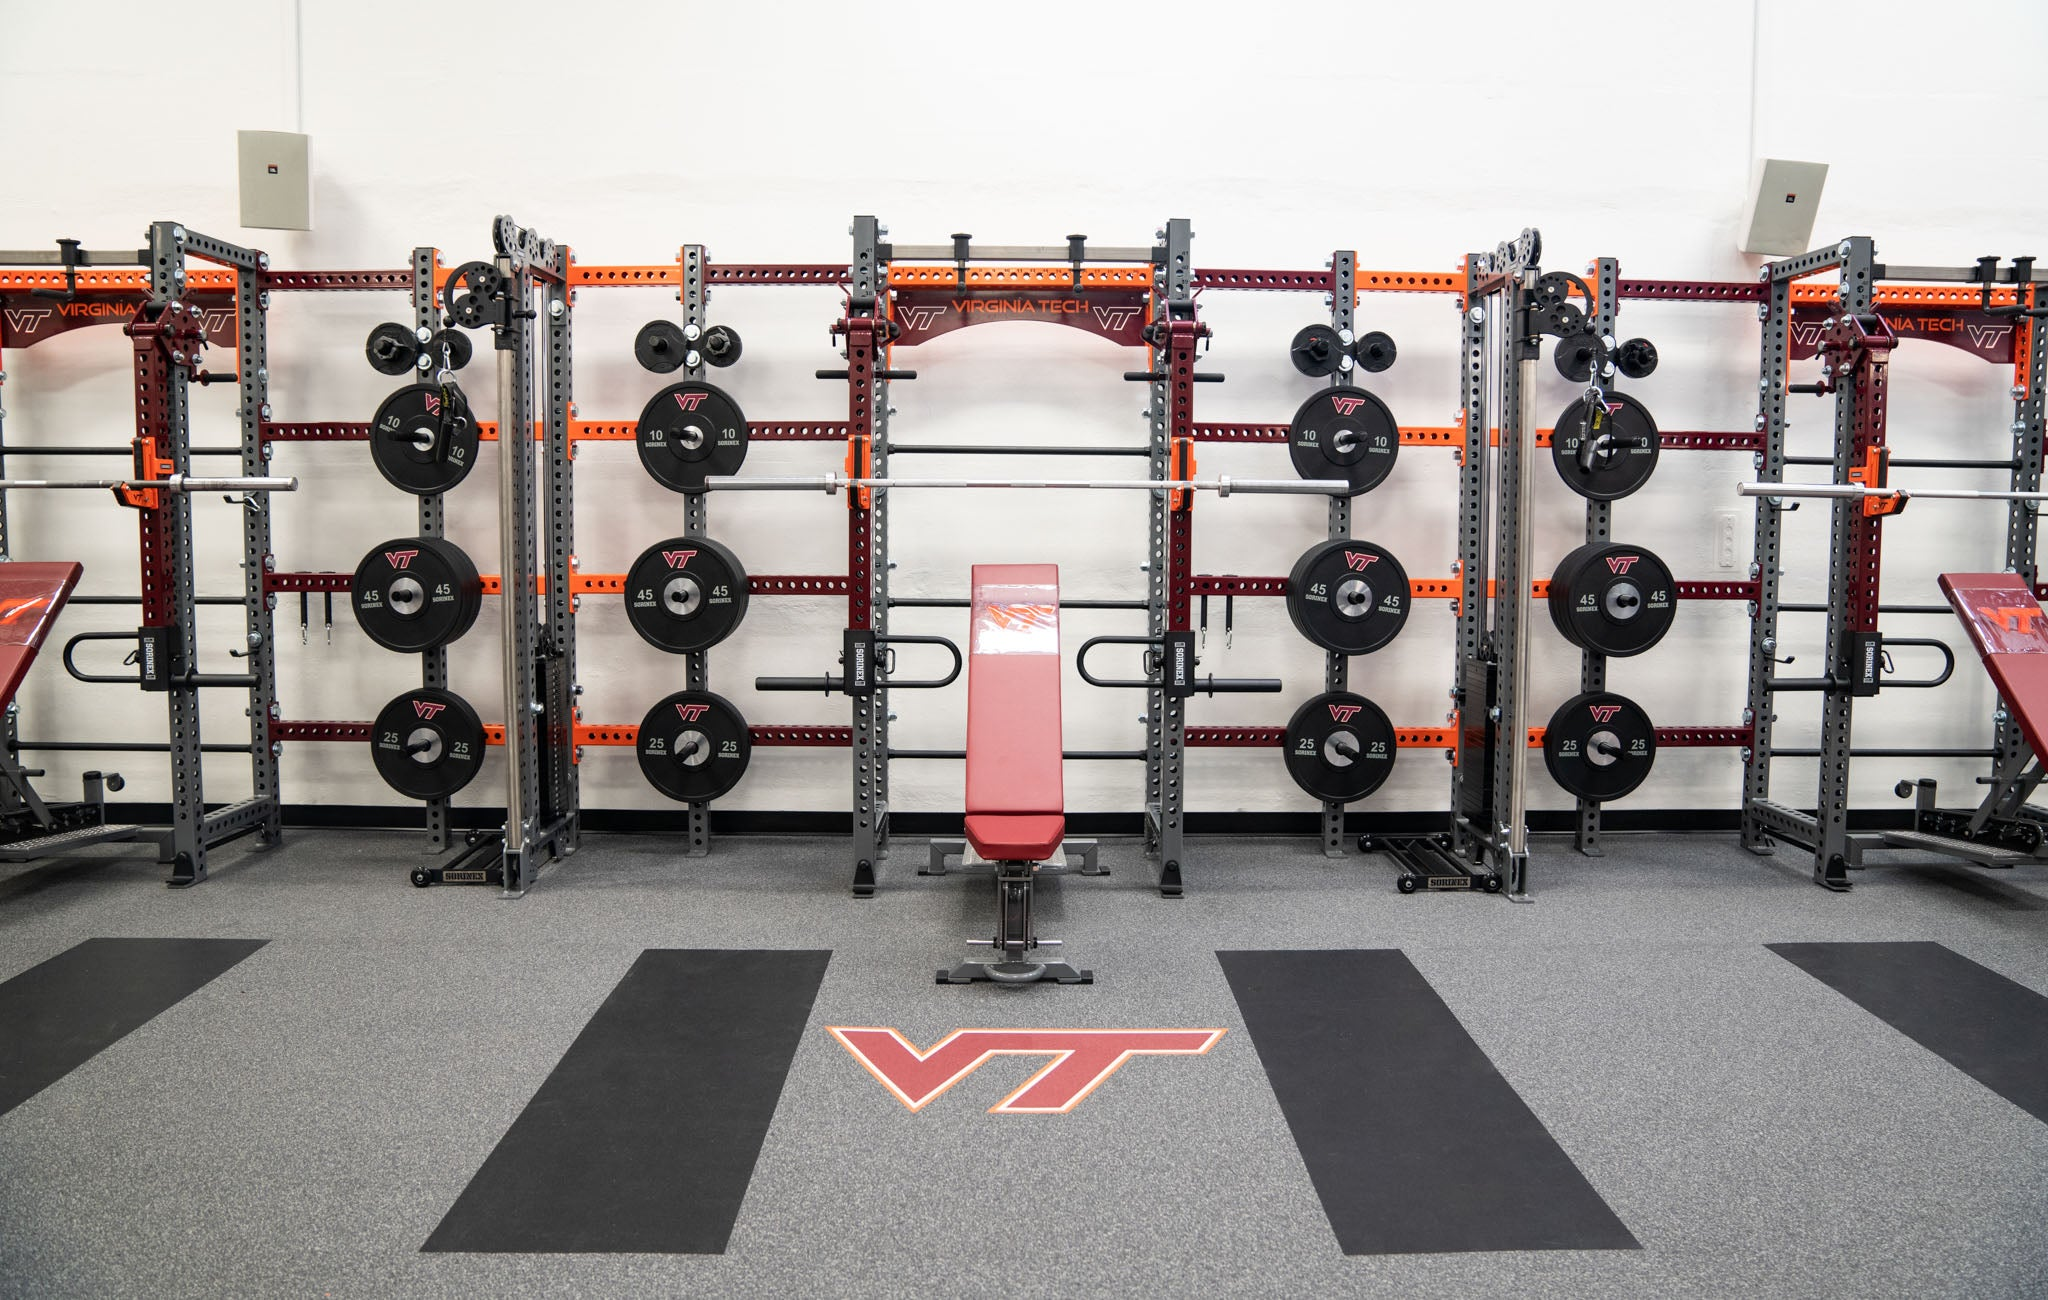 Virginia Tech Iron Bear Storage